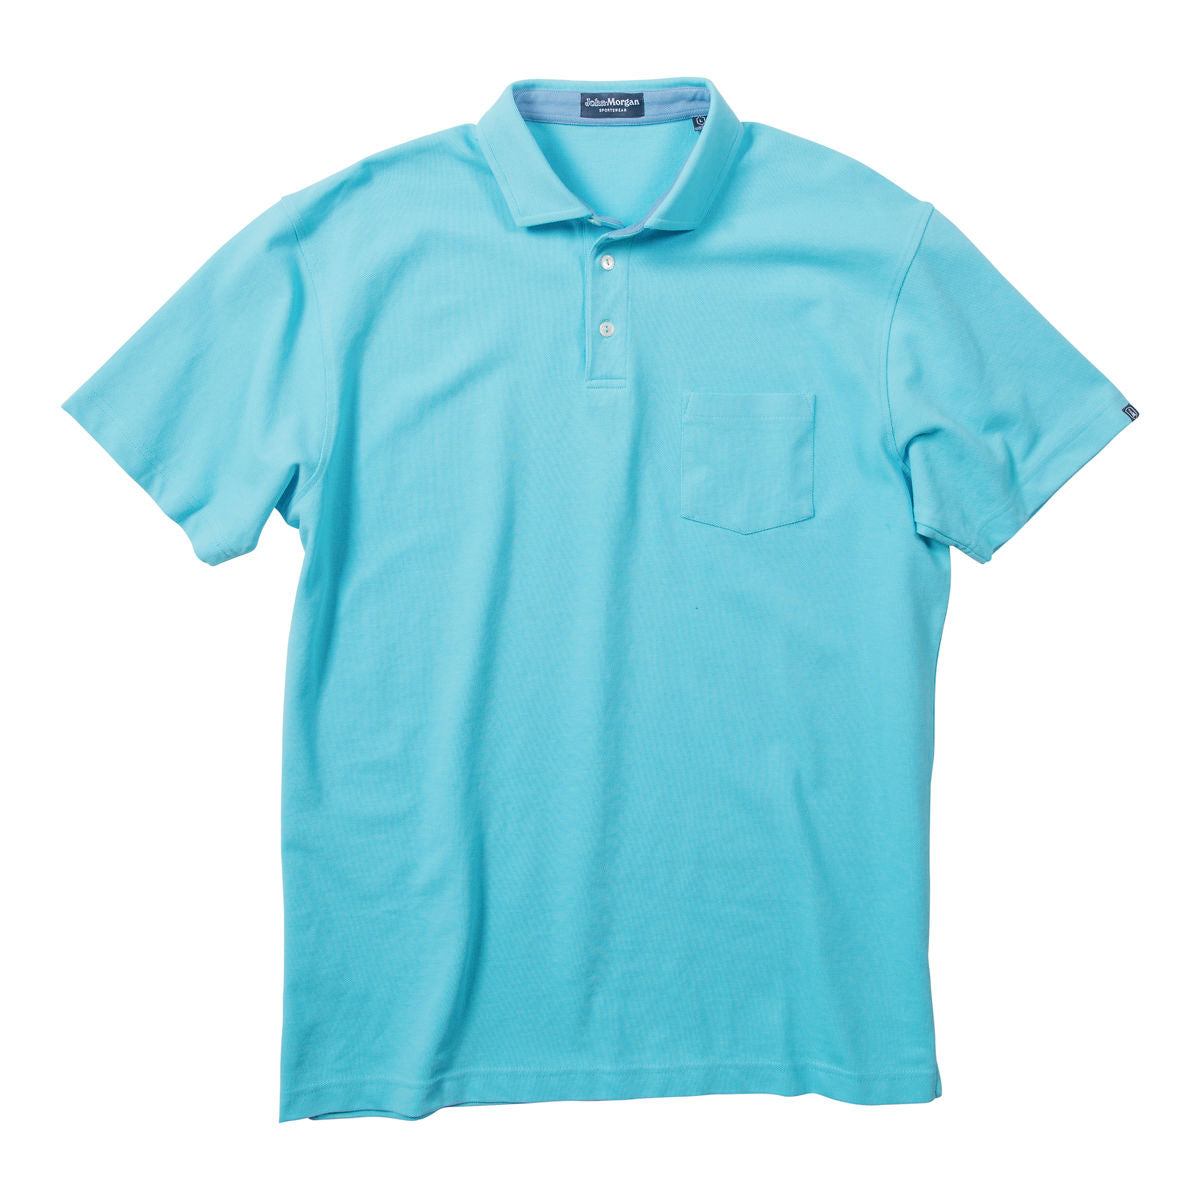 Whisper Vintage Pique Polo with Pocket - Barbados Blue